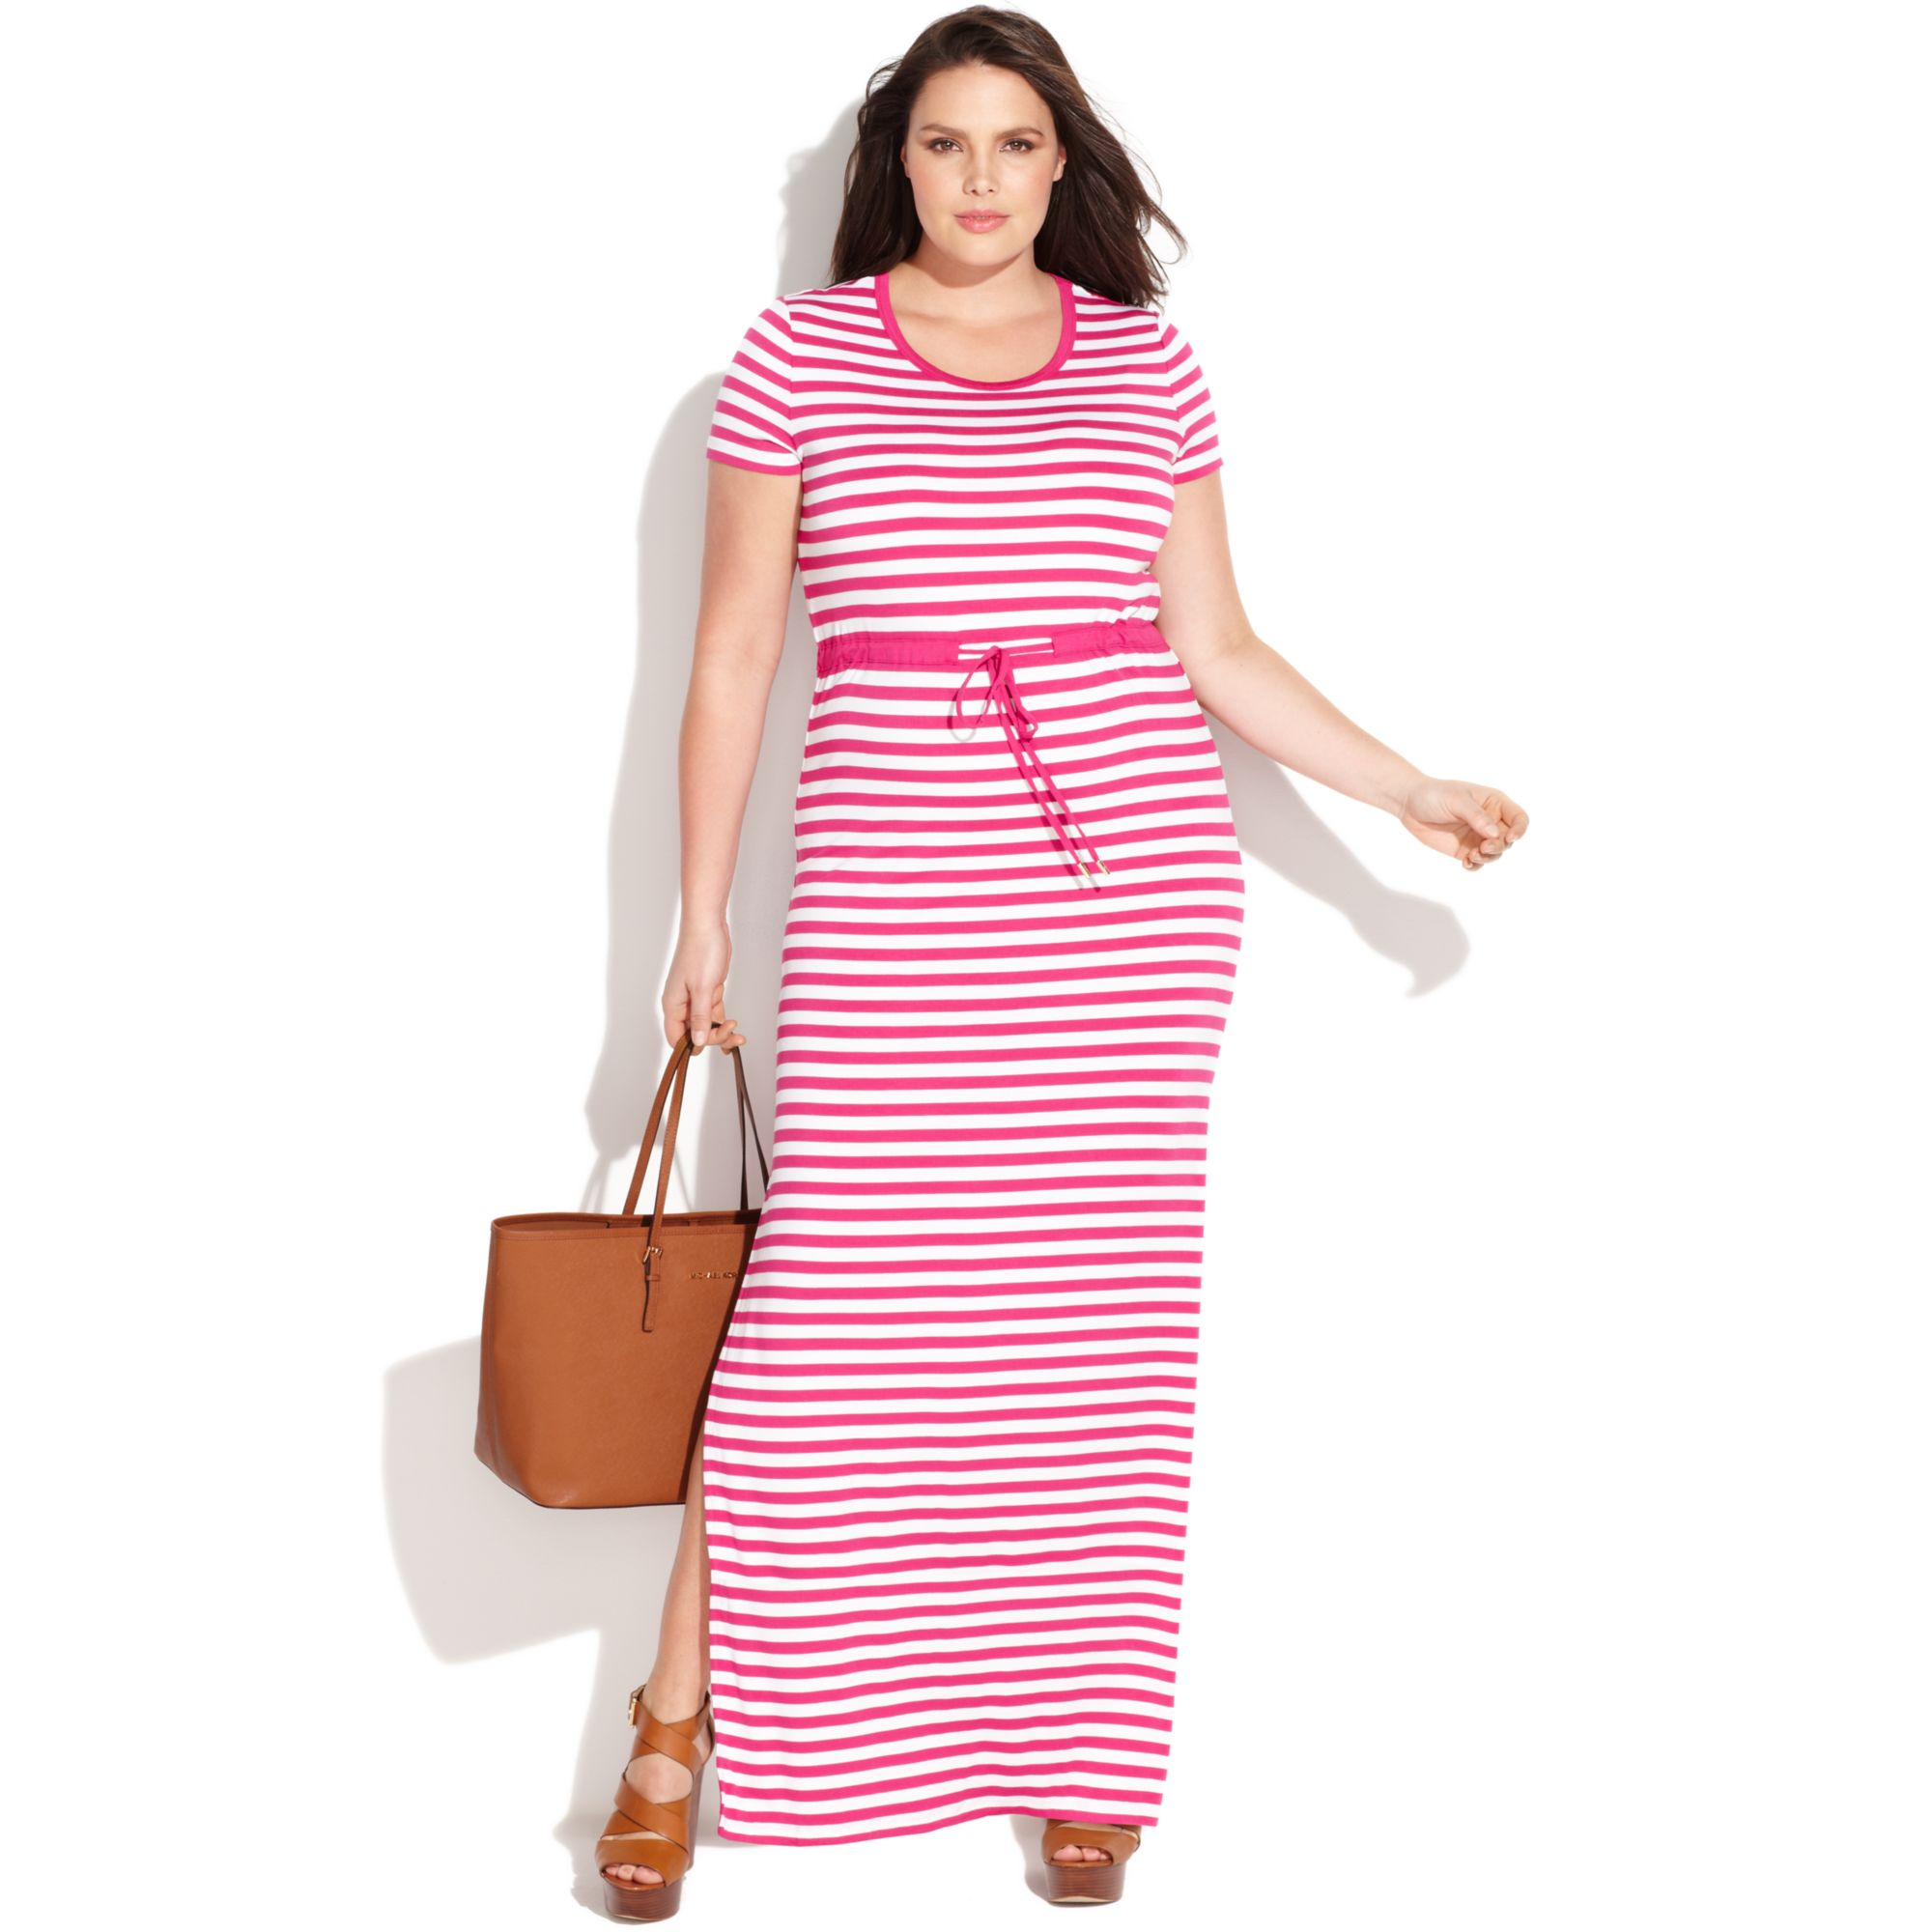 Michael Kors Plus Size Short Sleeve Striped Maxi Dress in White - Lyst